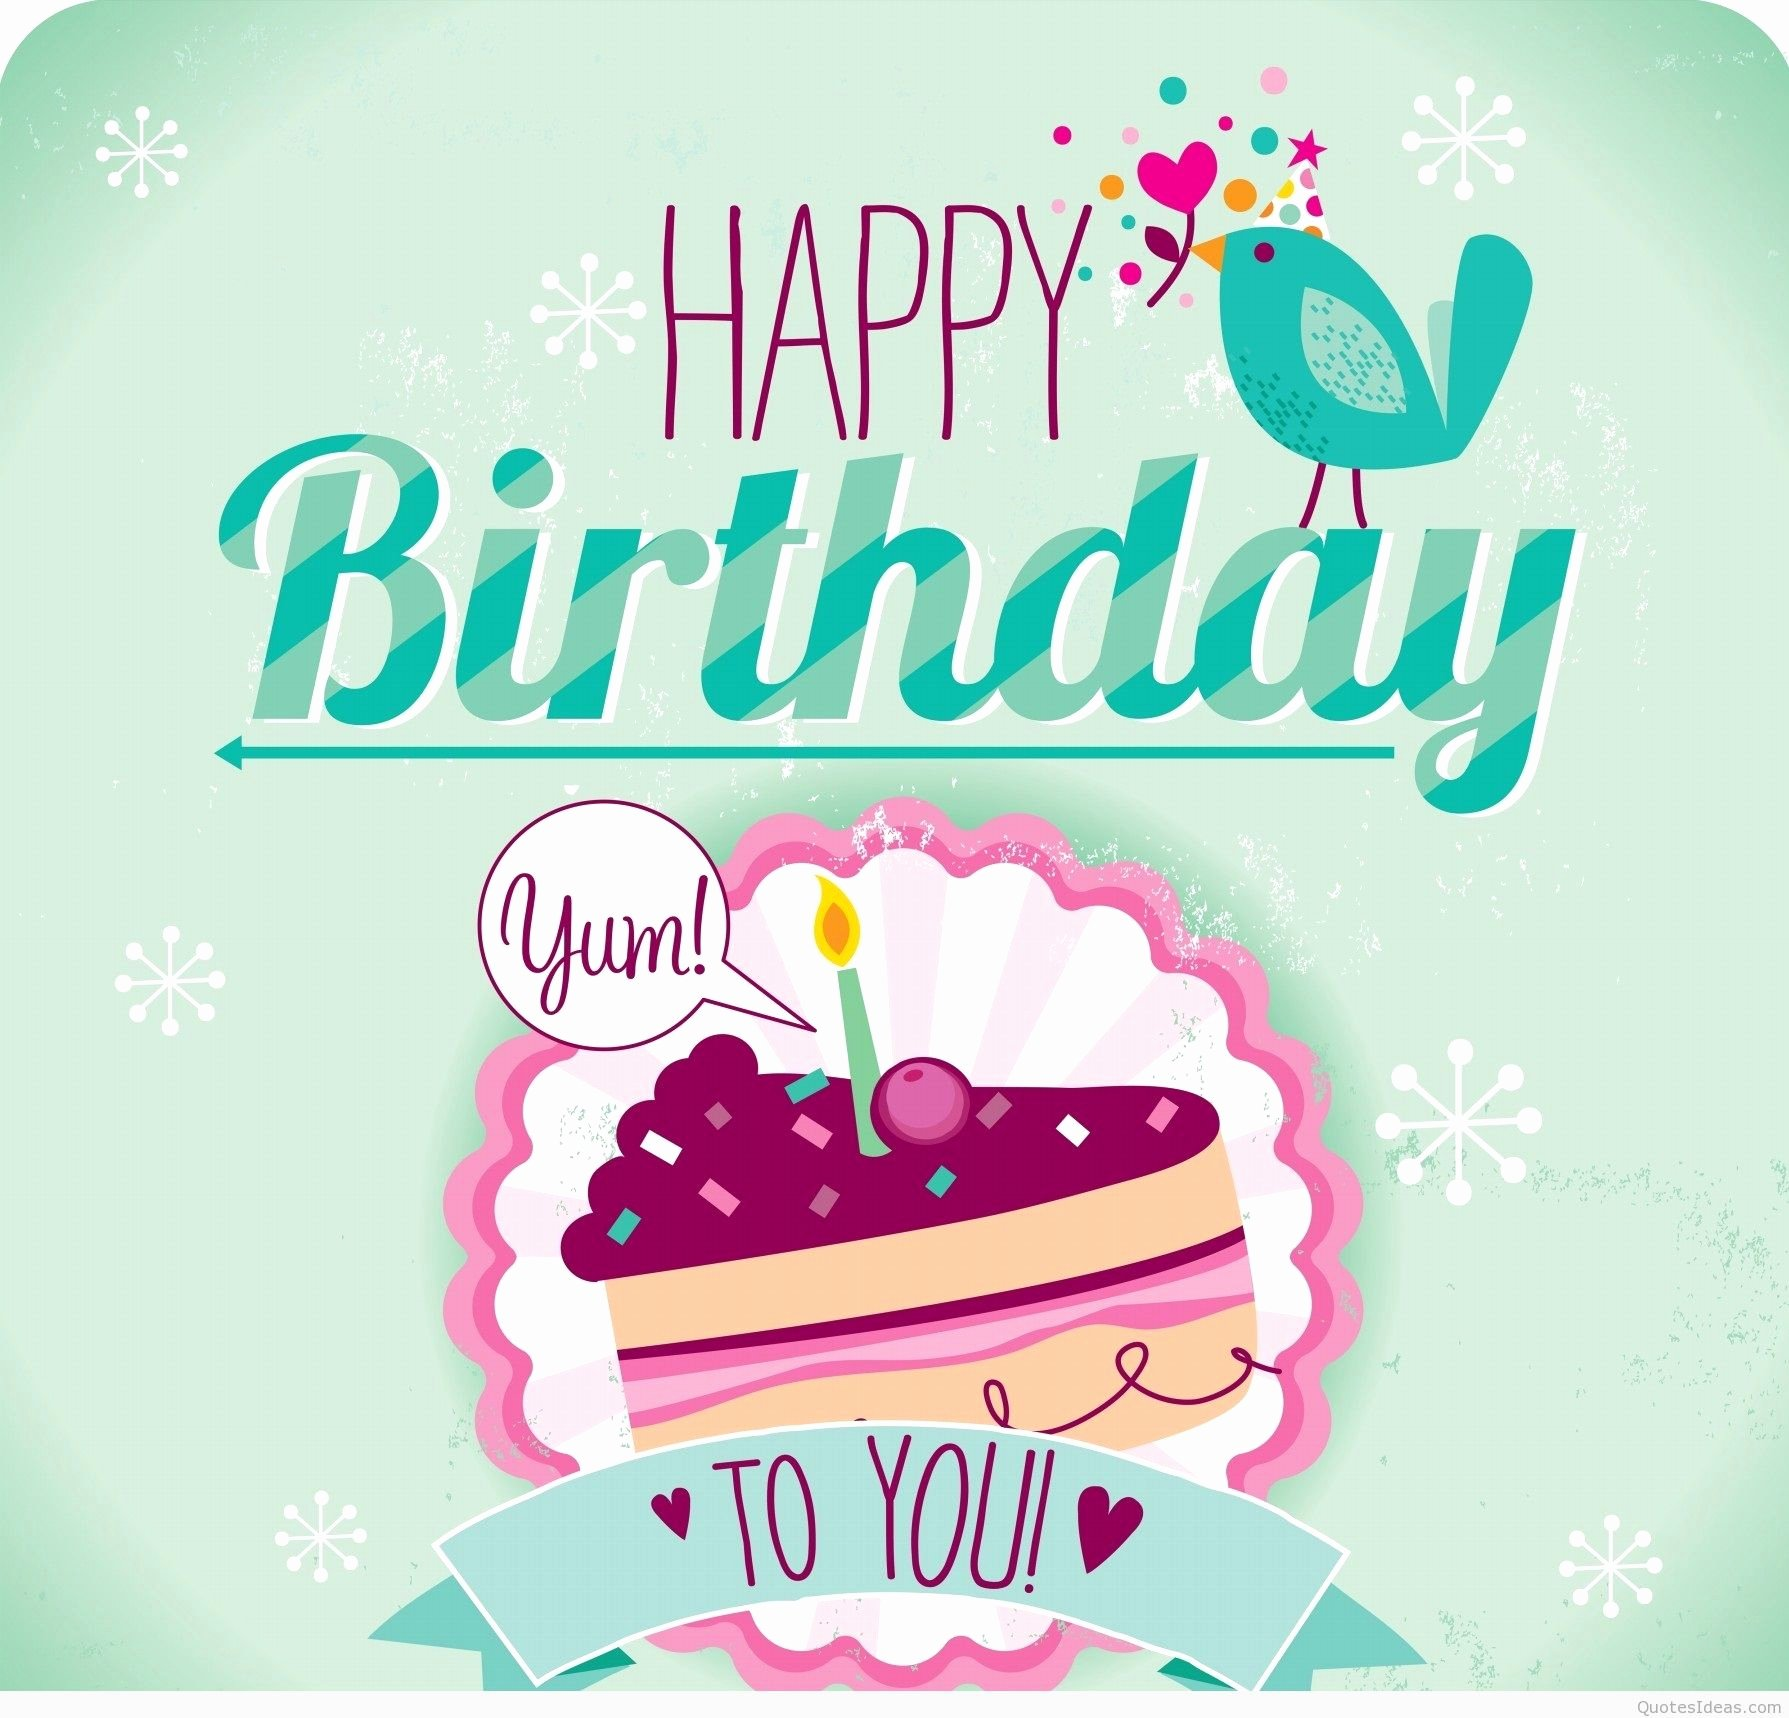 Free Happy Birthday Picture New Happy Birthday Cards Wishes Messages 2015 2016